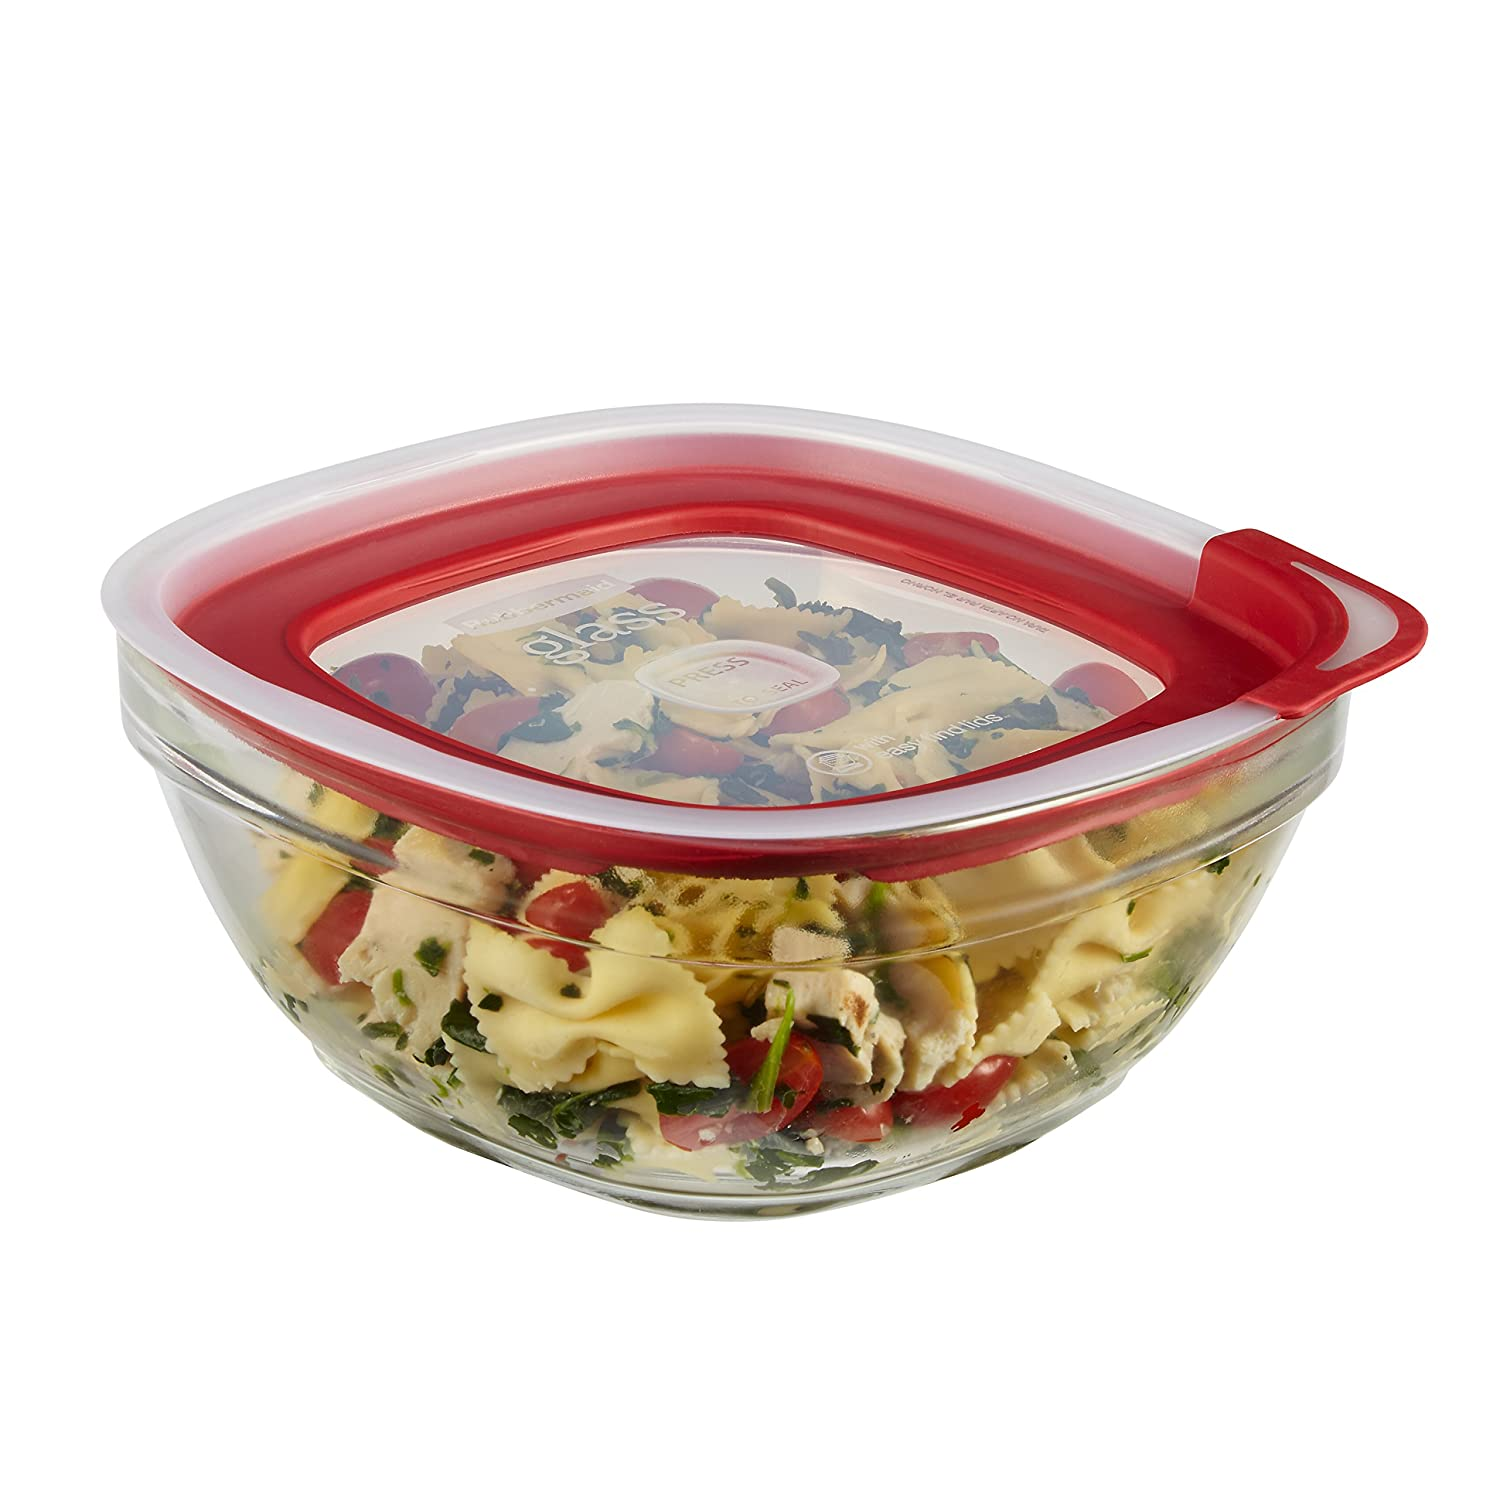 Rubbermaid Easy Find Lids Glass Food Storage Container, 8 Cup, Racer Red 2856006